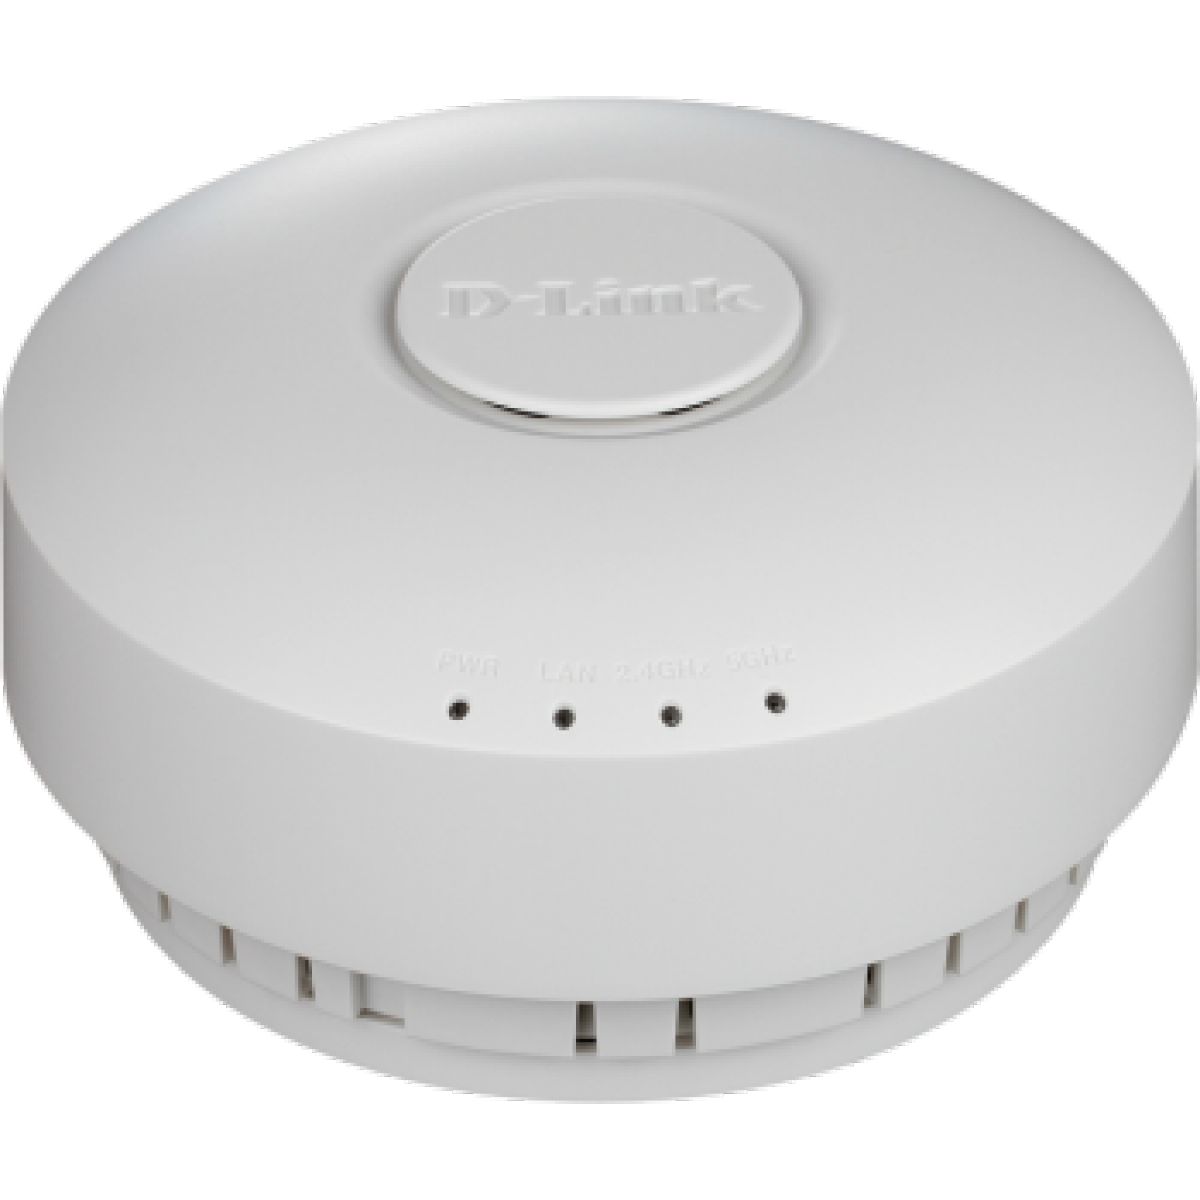 DWL-6600AP, 300Mbps, Dual Band, 2.4, 5 GHz, Unified Wireless N Simultaneous Dual-Band PoE